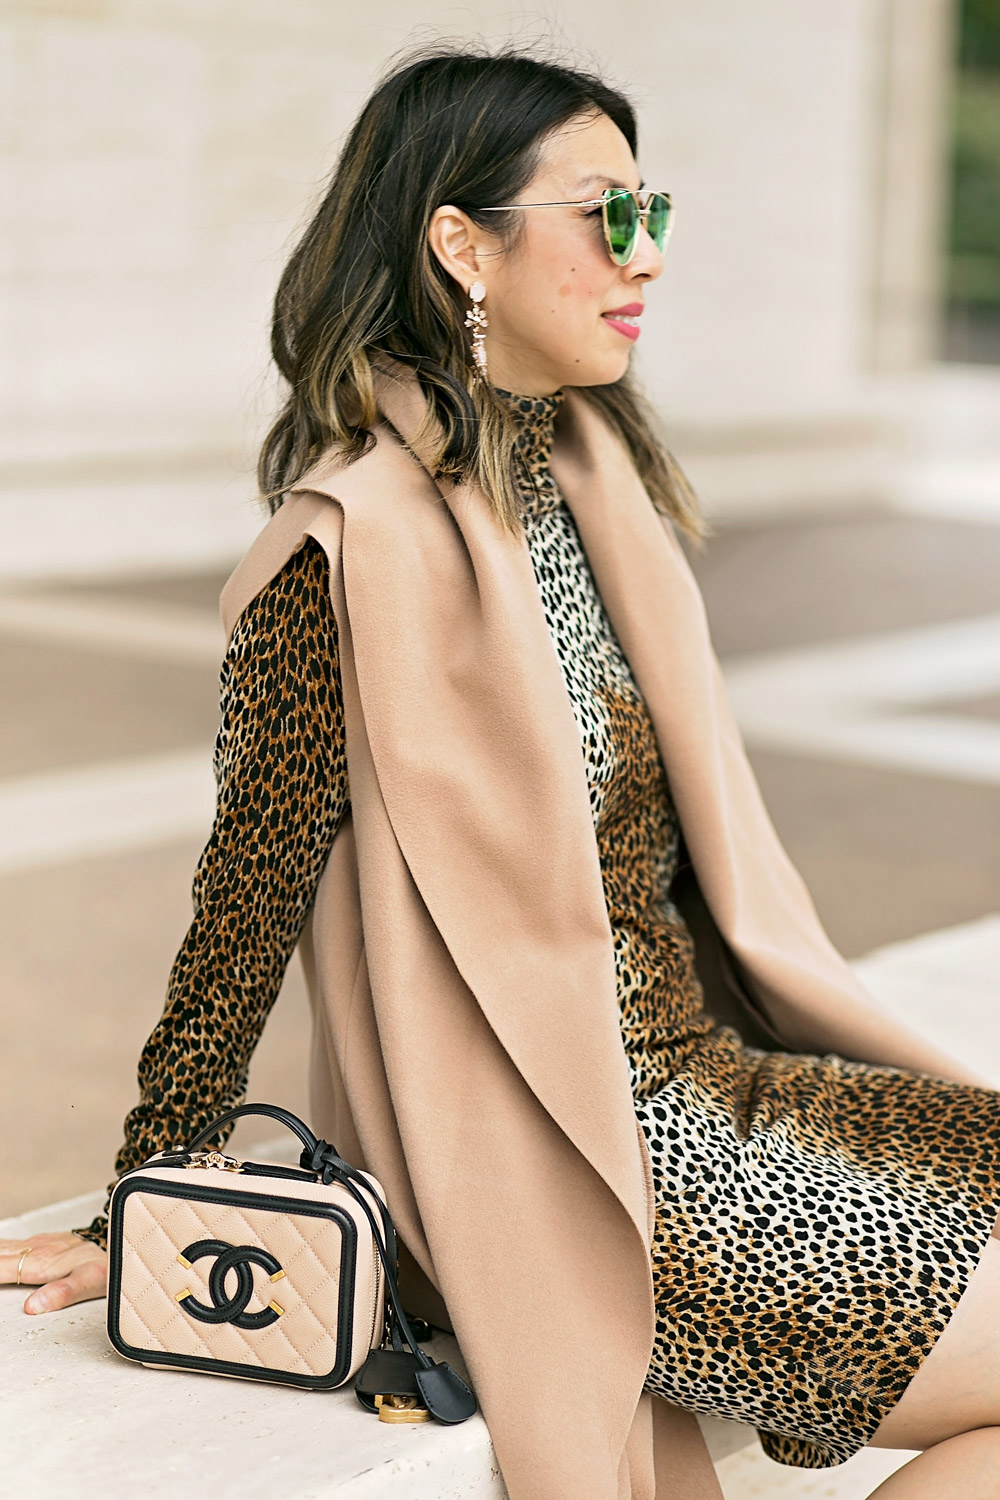 dolce and gabbana leopard print dress and camel vest, chanel filigree vanity bag